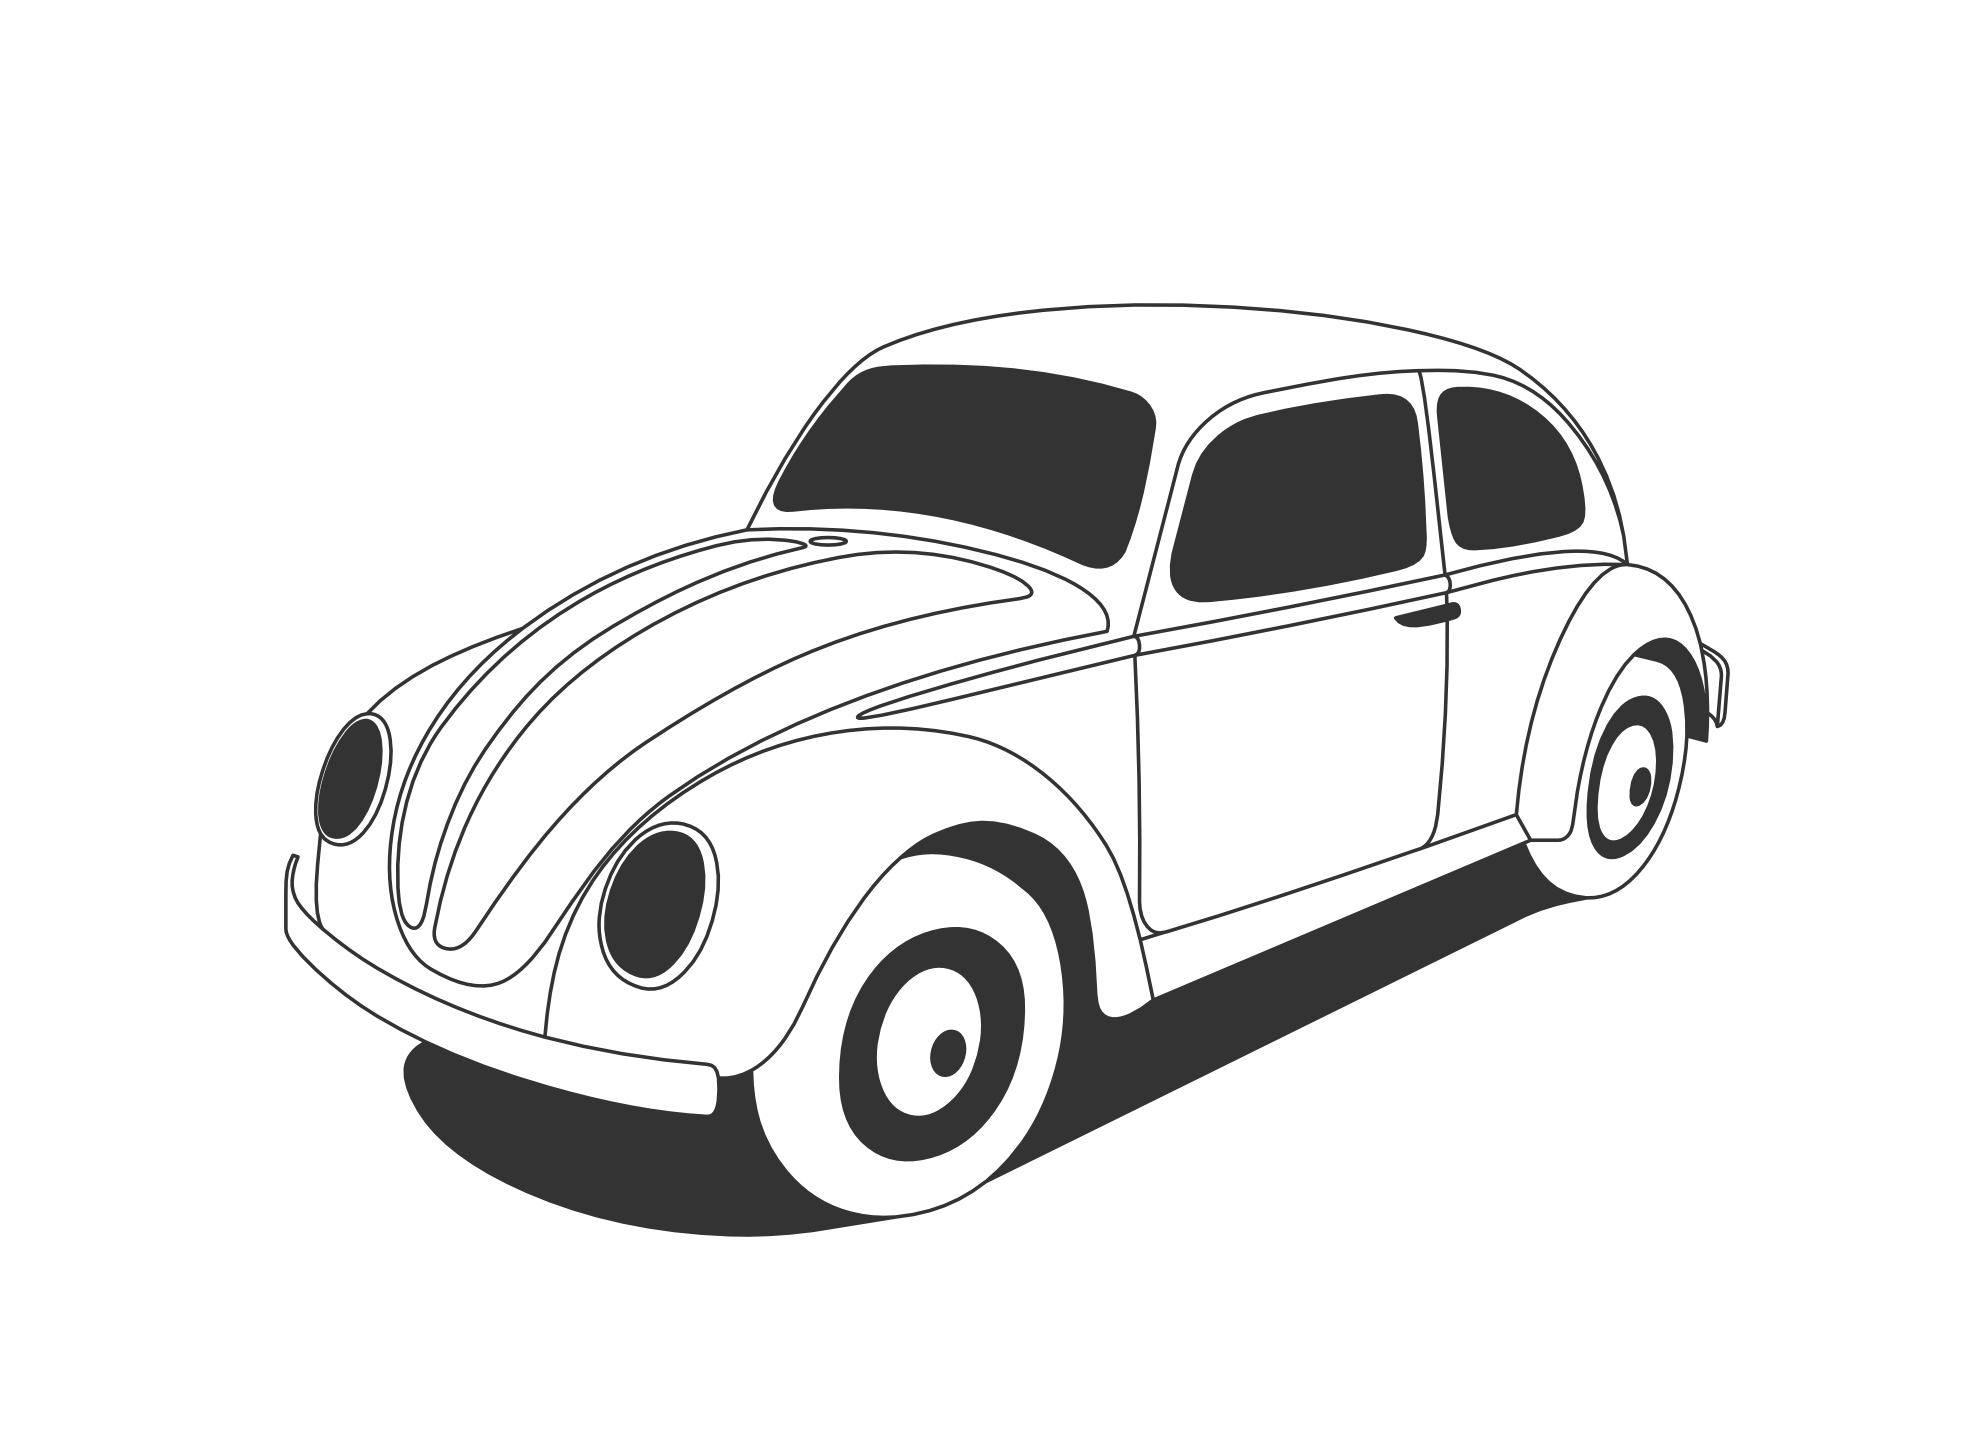 Old fashioned car clipart svg royalty free Classic cliparts | Printables | Pinterest | Office clipart and Clip art svg royalty free